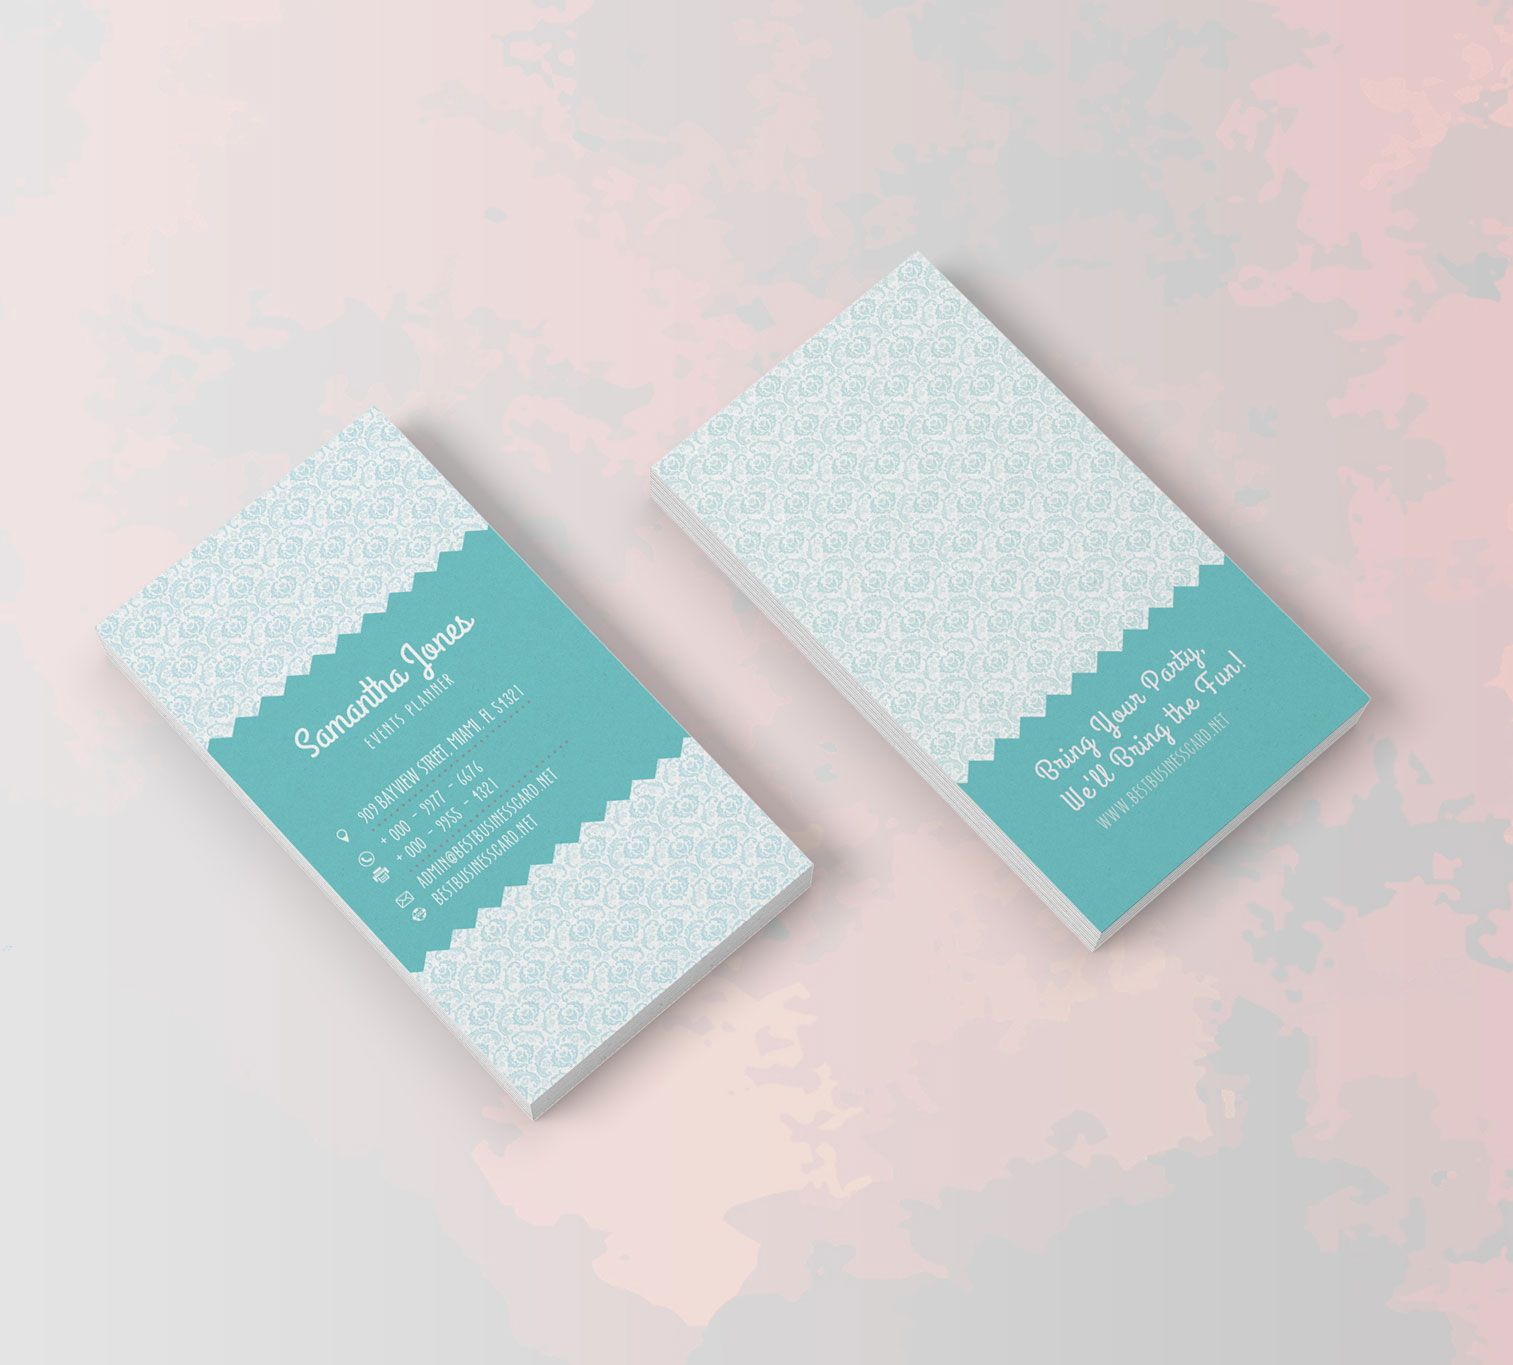 Free PSD Templates: Party Planner Business Cards | Unique Business ...